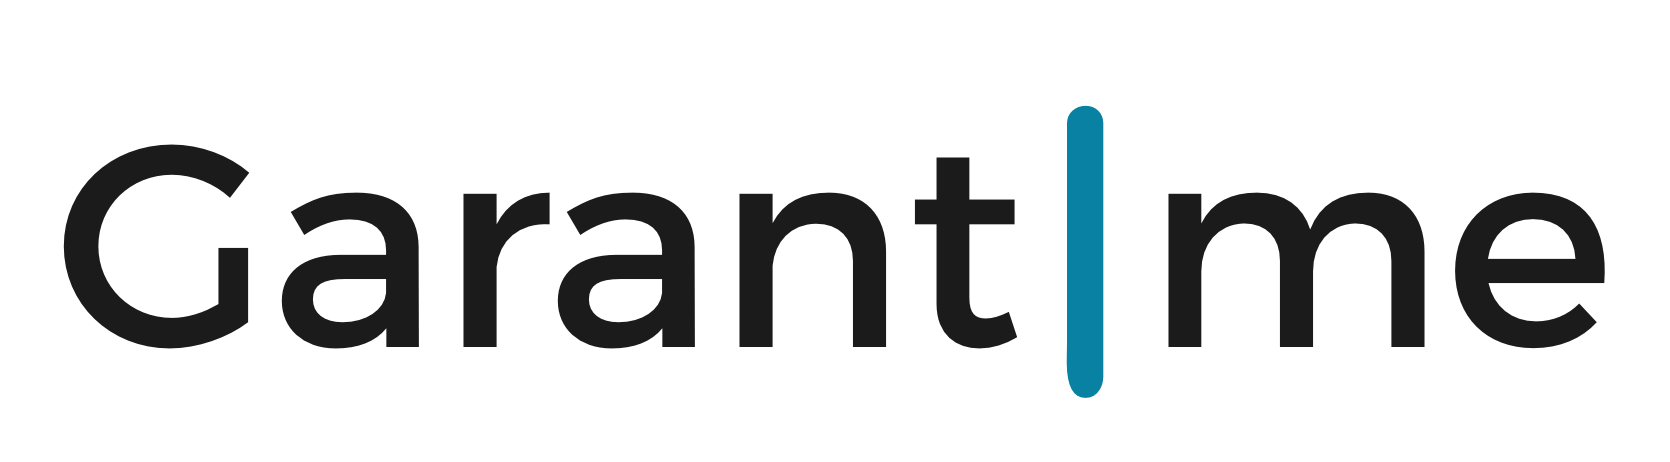 Garantme_black_logo_no_background-1-1